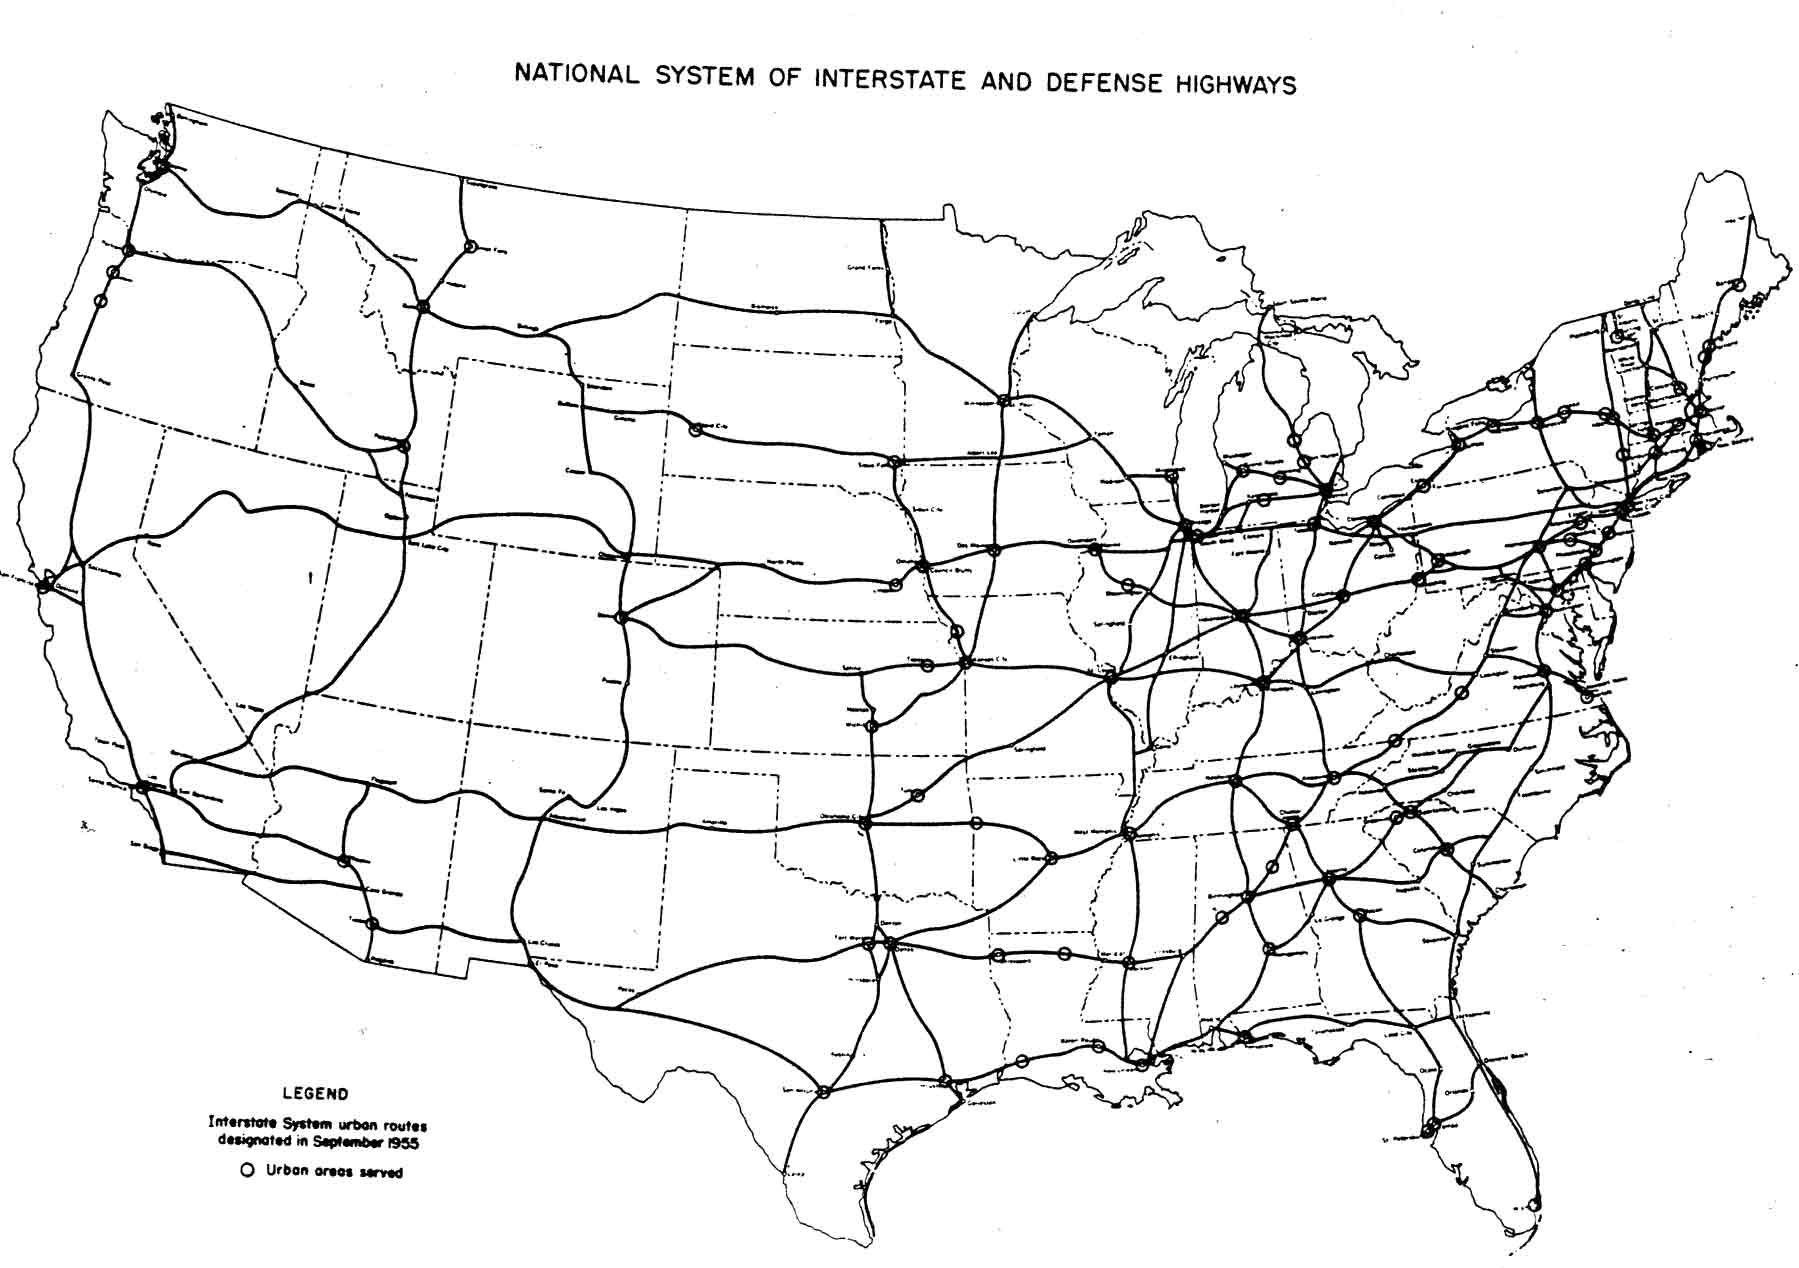 Original plan for the Interstate Highway System in the United